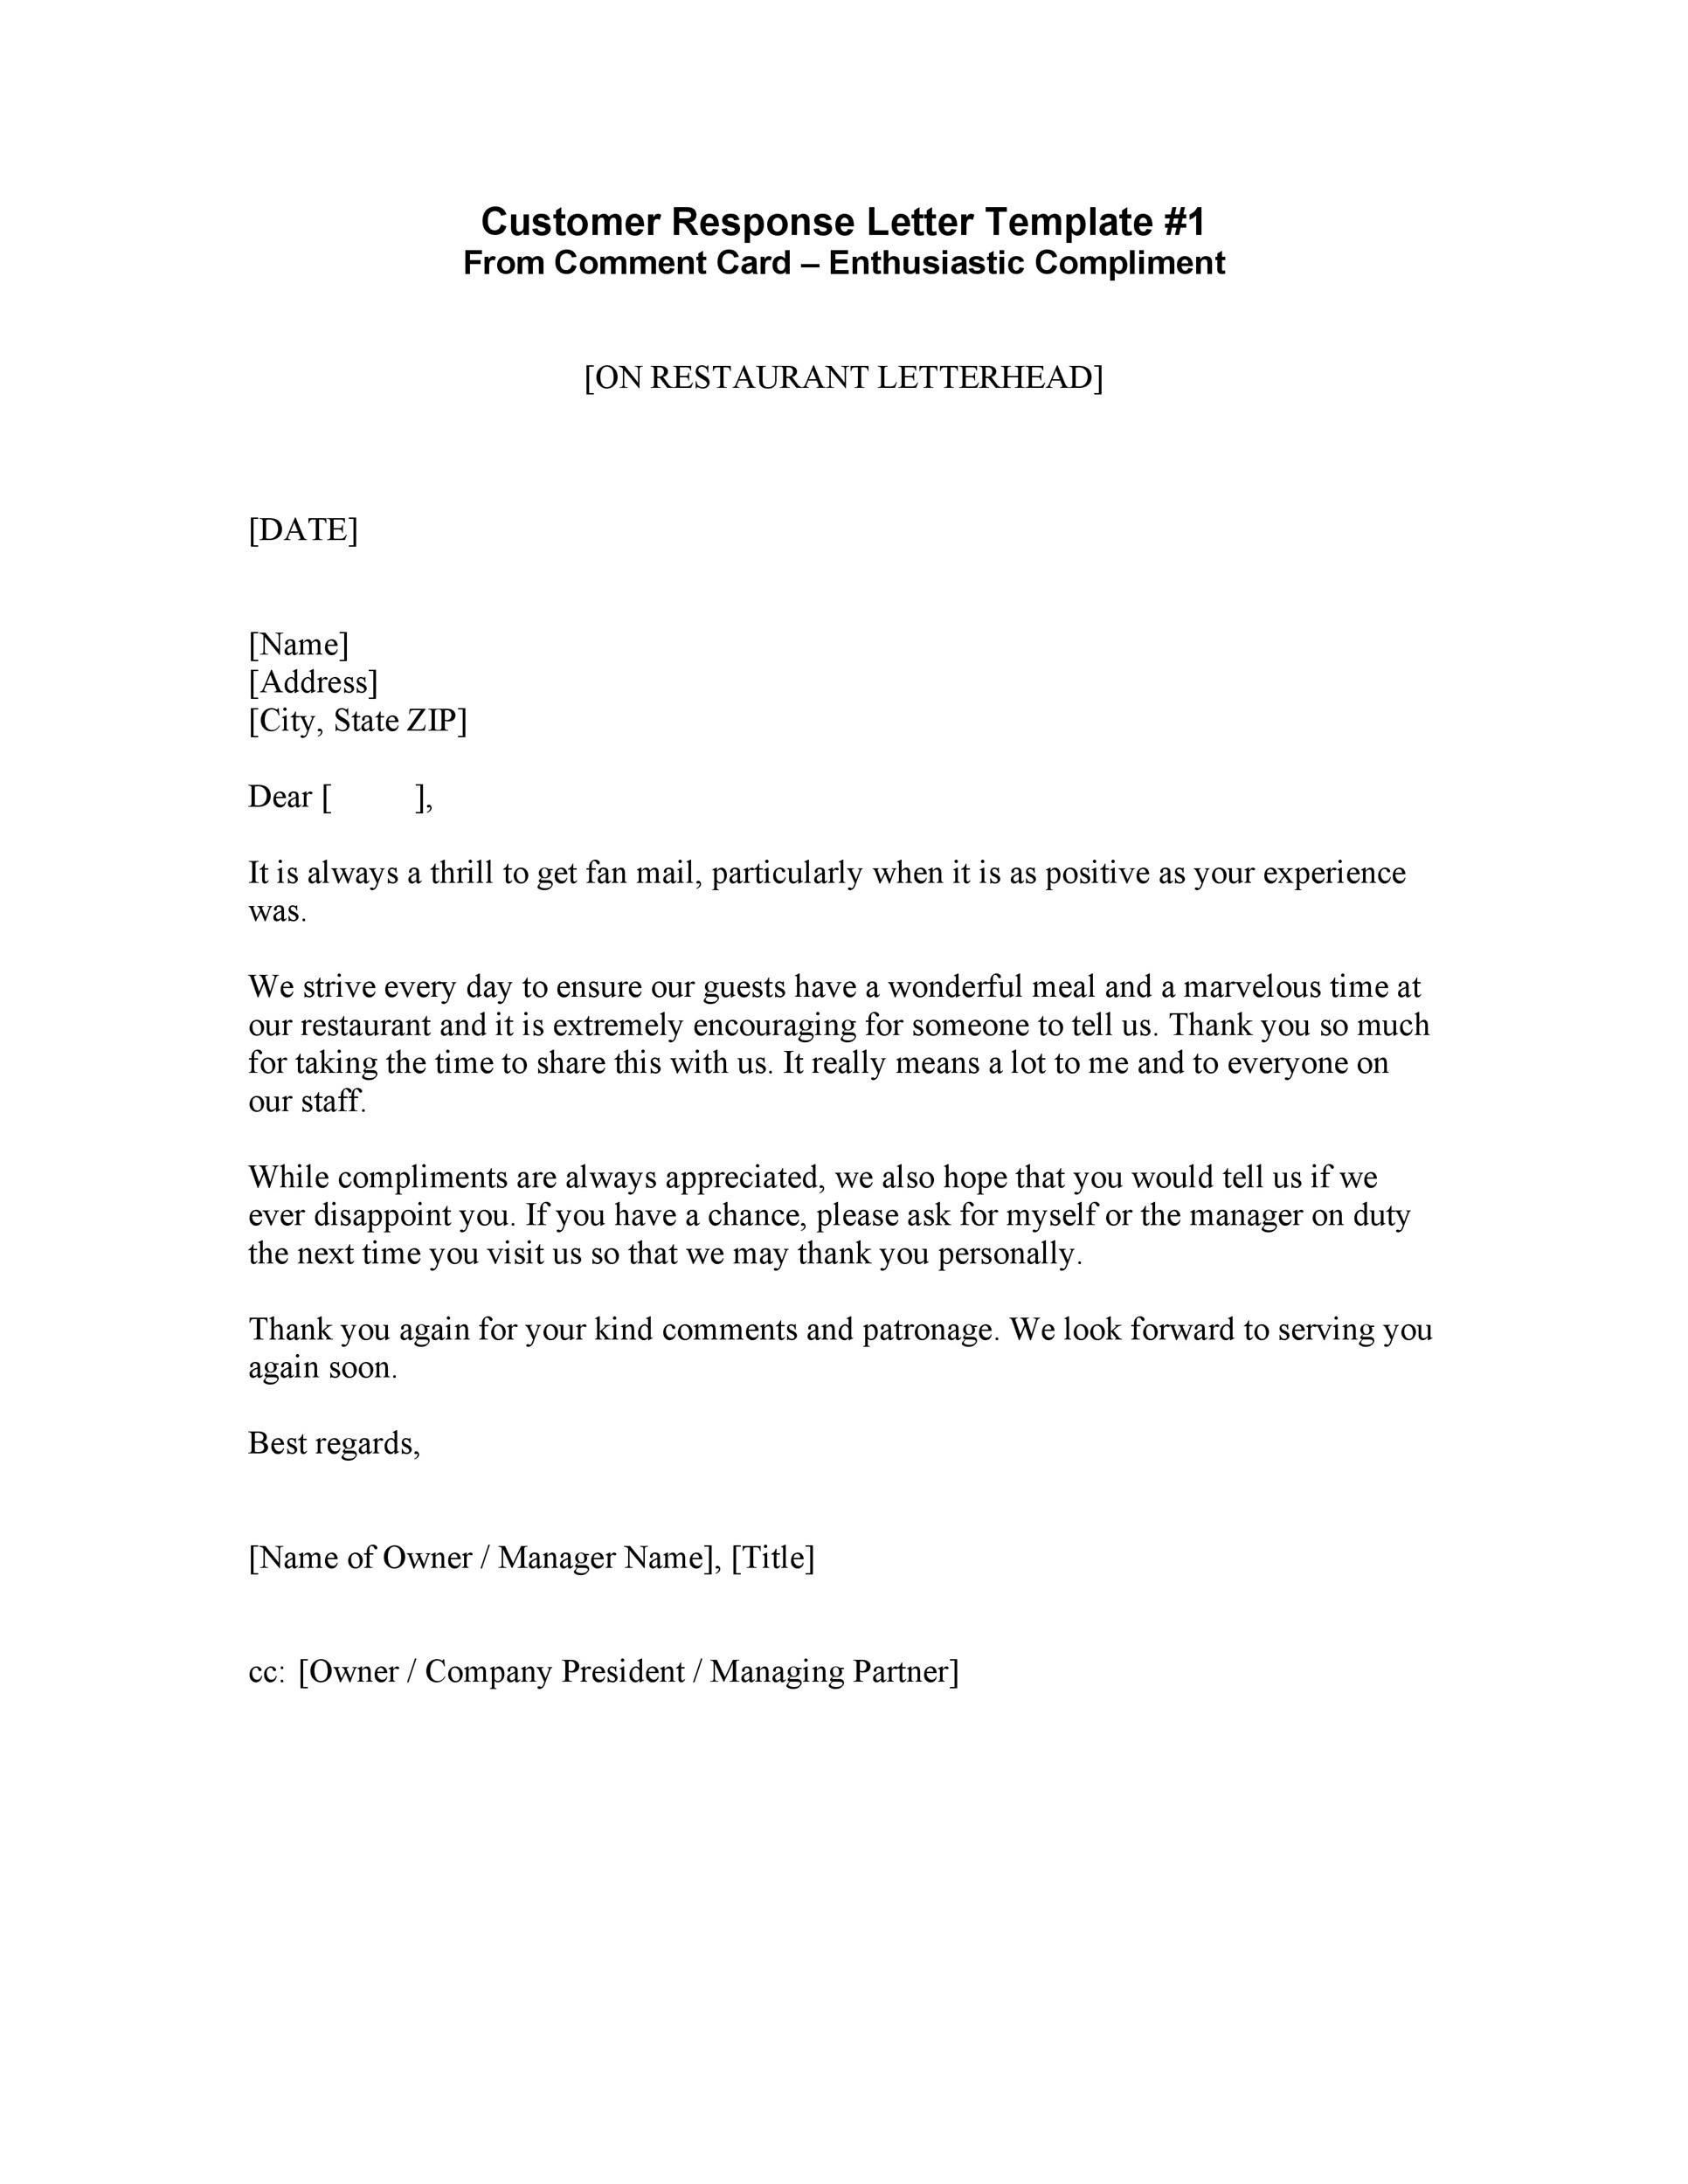 48 Useful Apology Letter Templates (& Sorry Letter Samples)